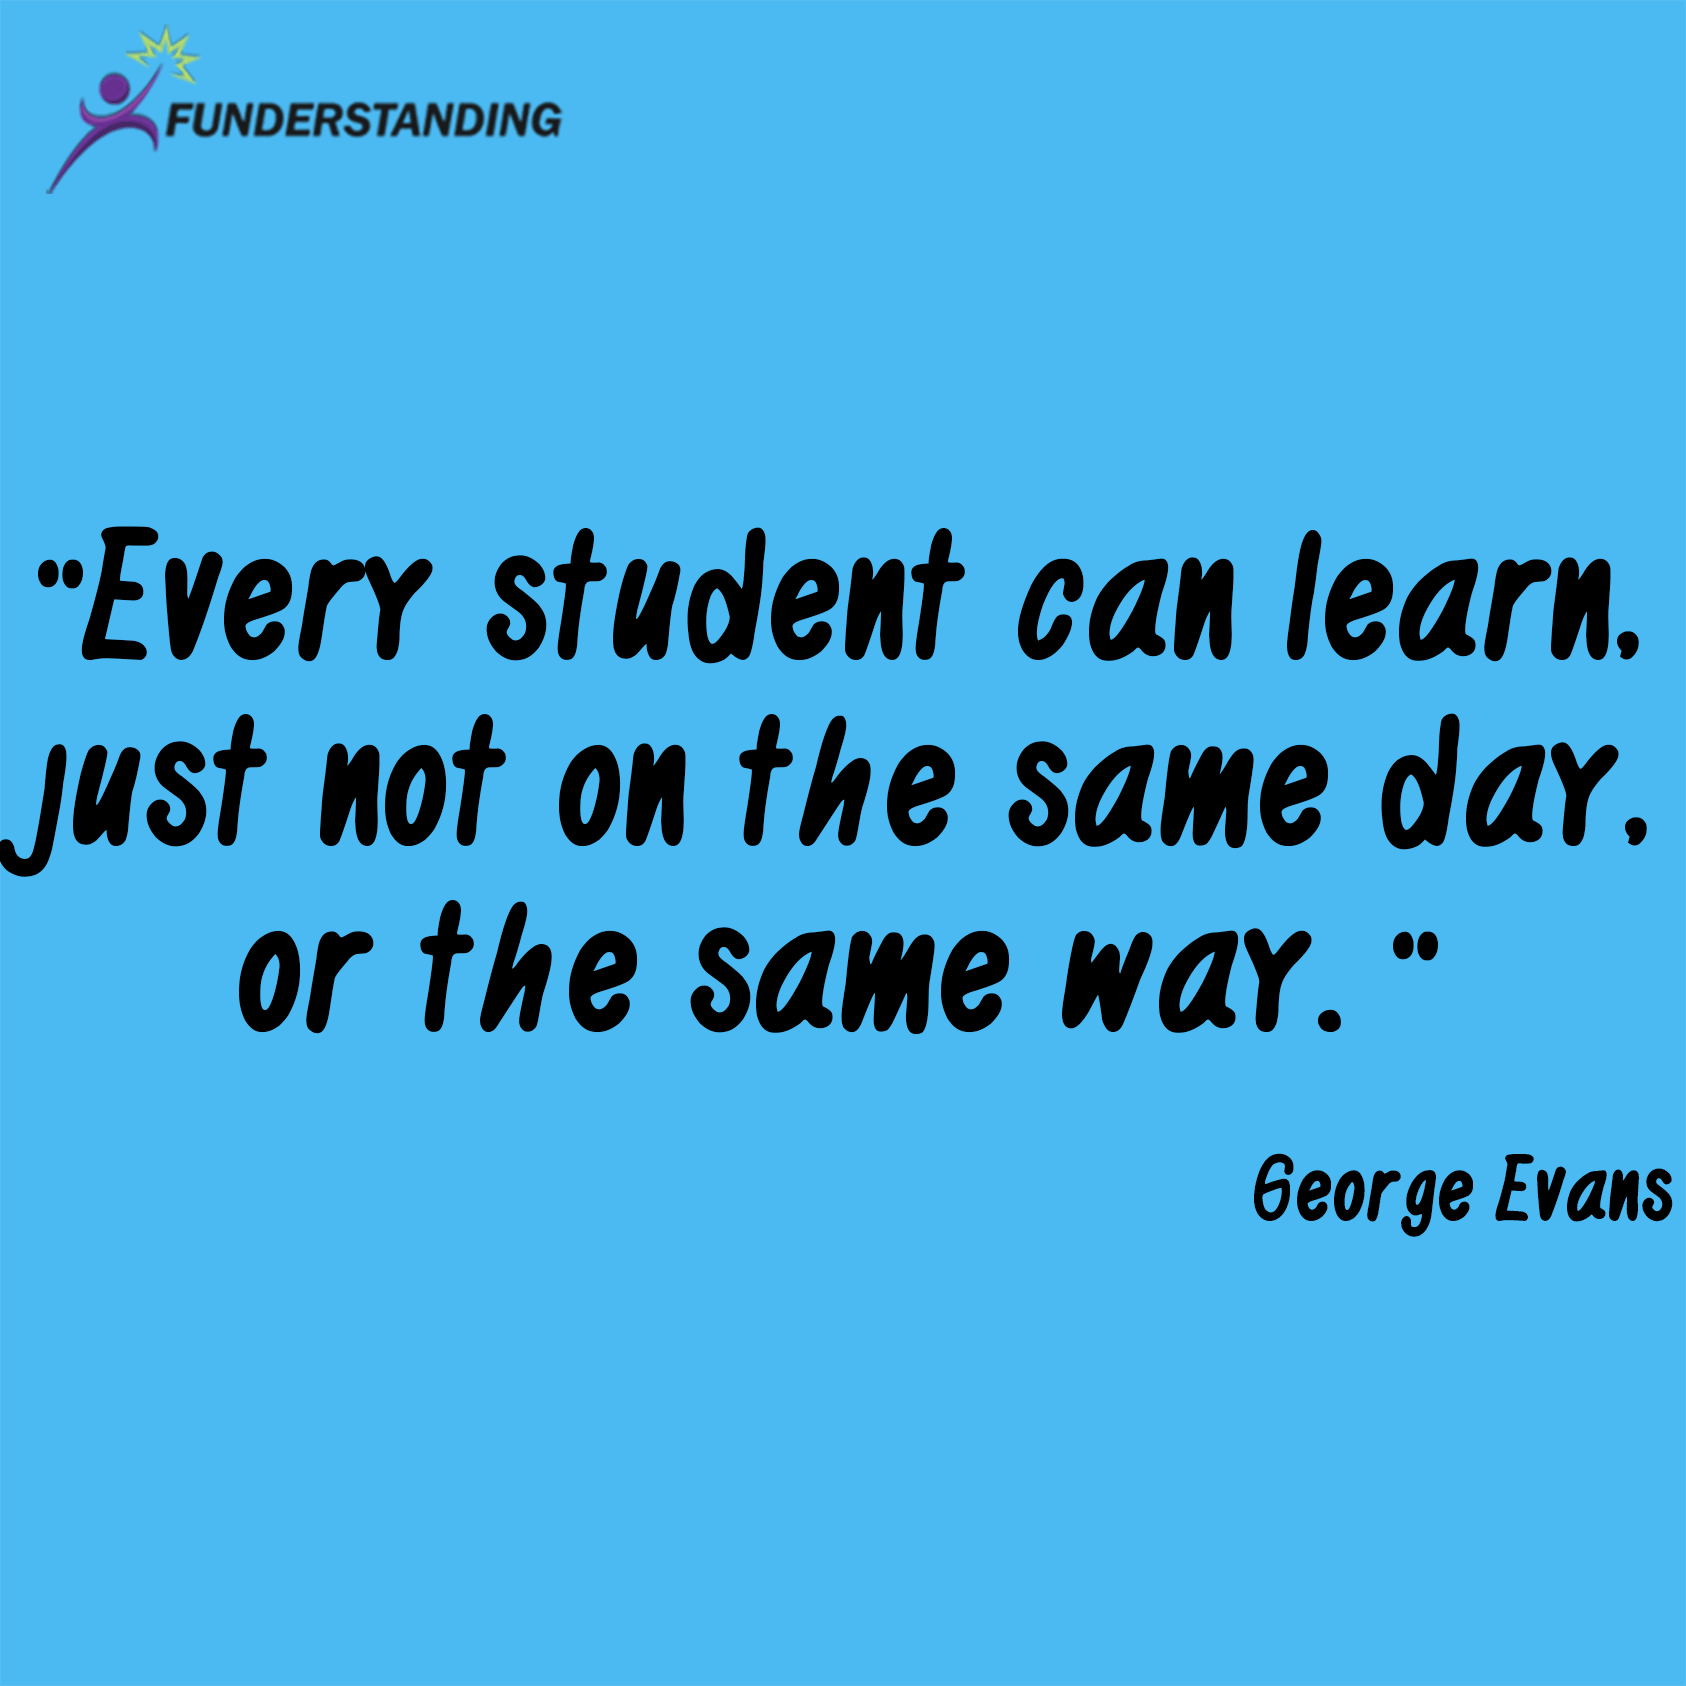 Educational Quotes | Funderstanding: Education, Curriculum ...